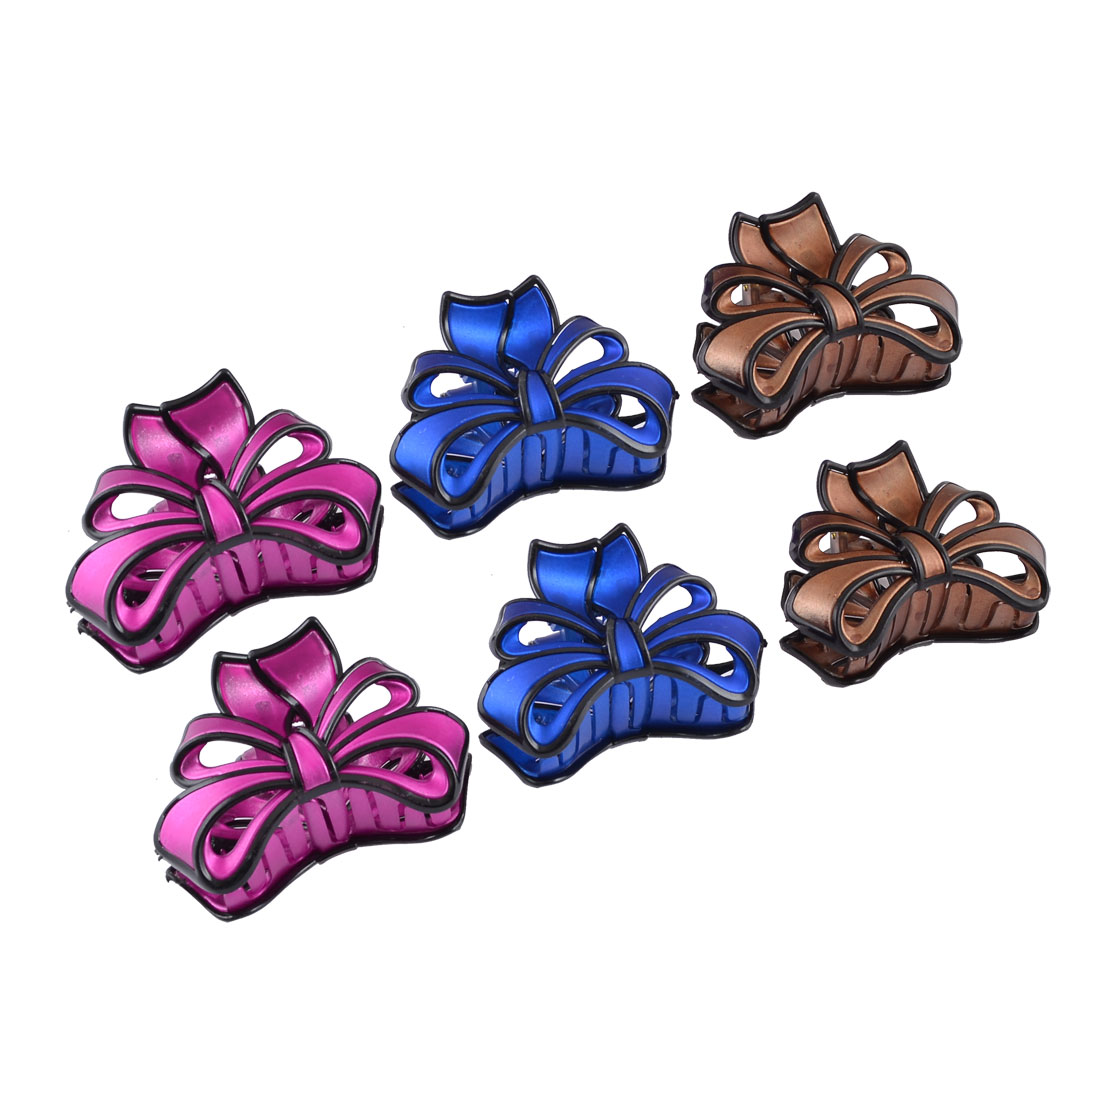 Ladies Blue Purple Coffee Color Spring Loaded Plastic Bowknot Claw Hair Clips 6 Pcs